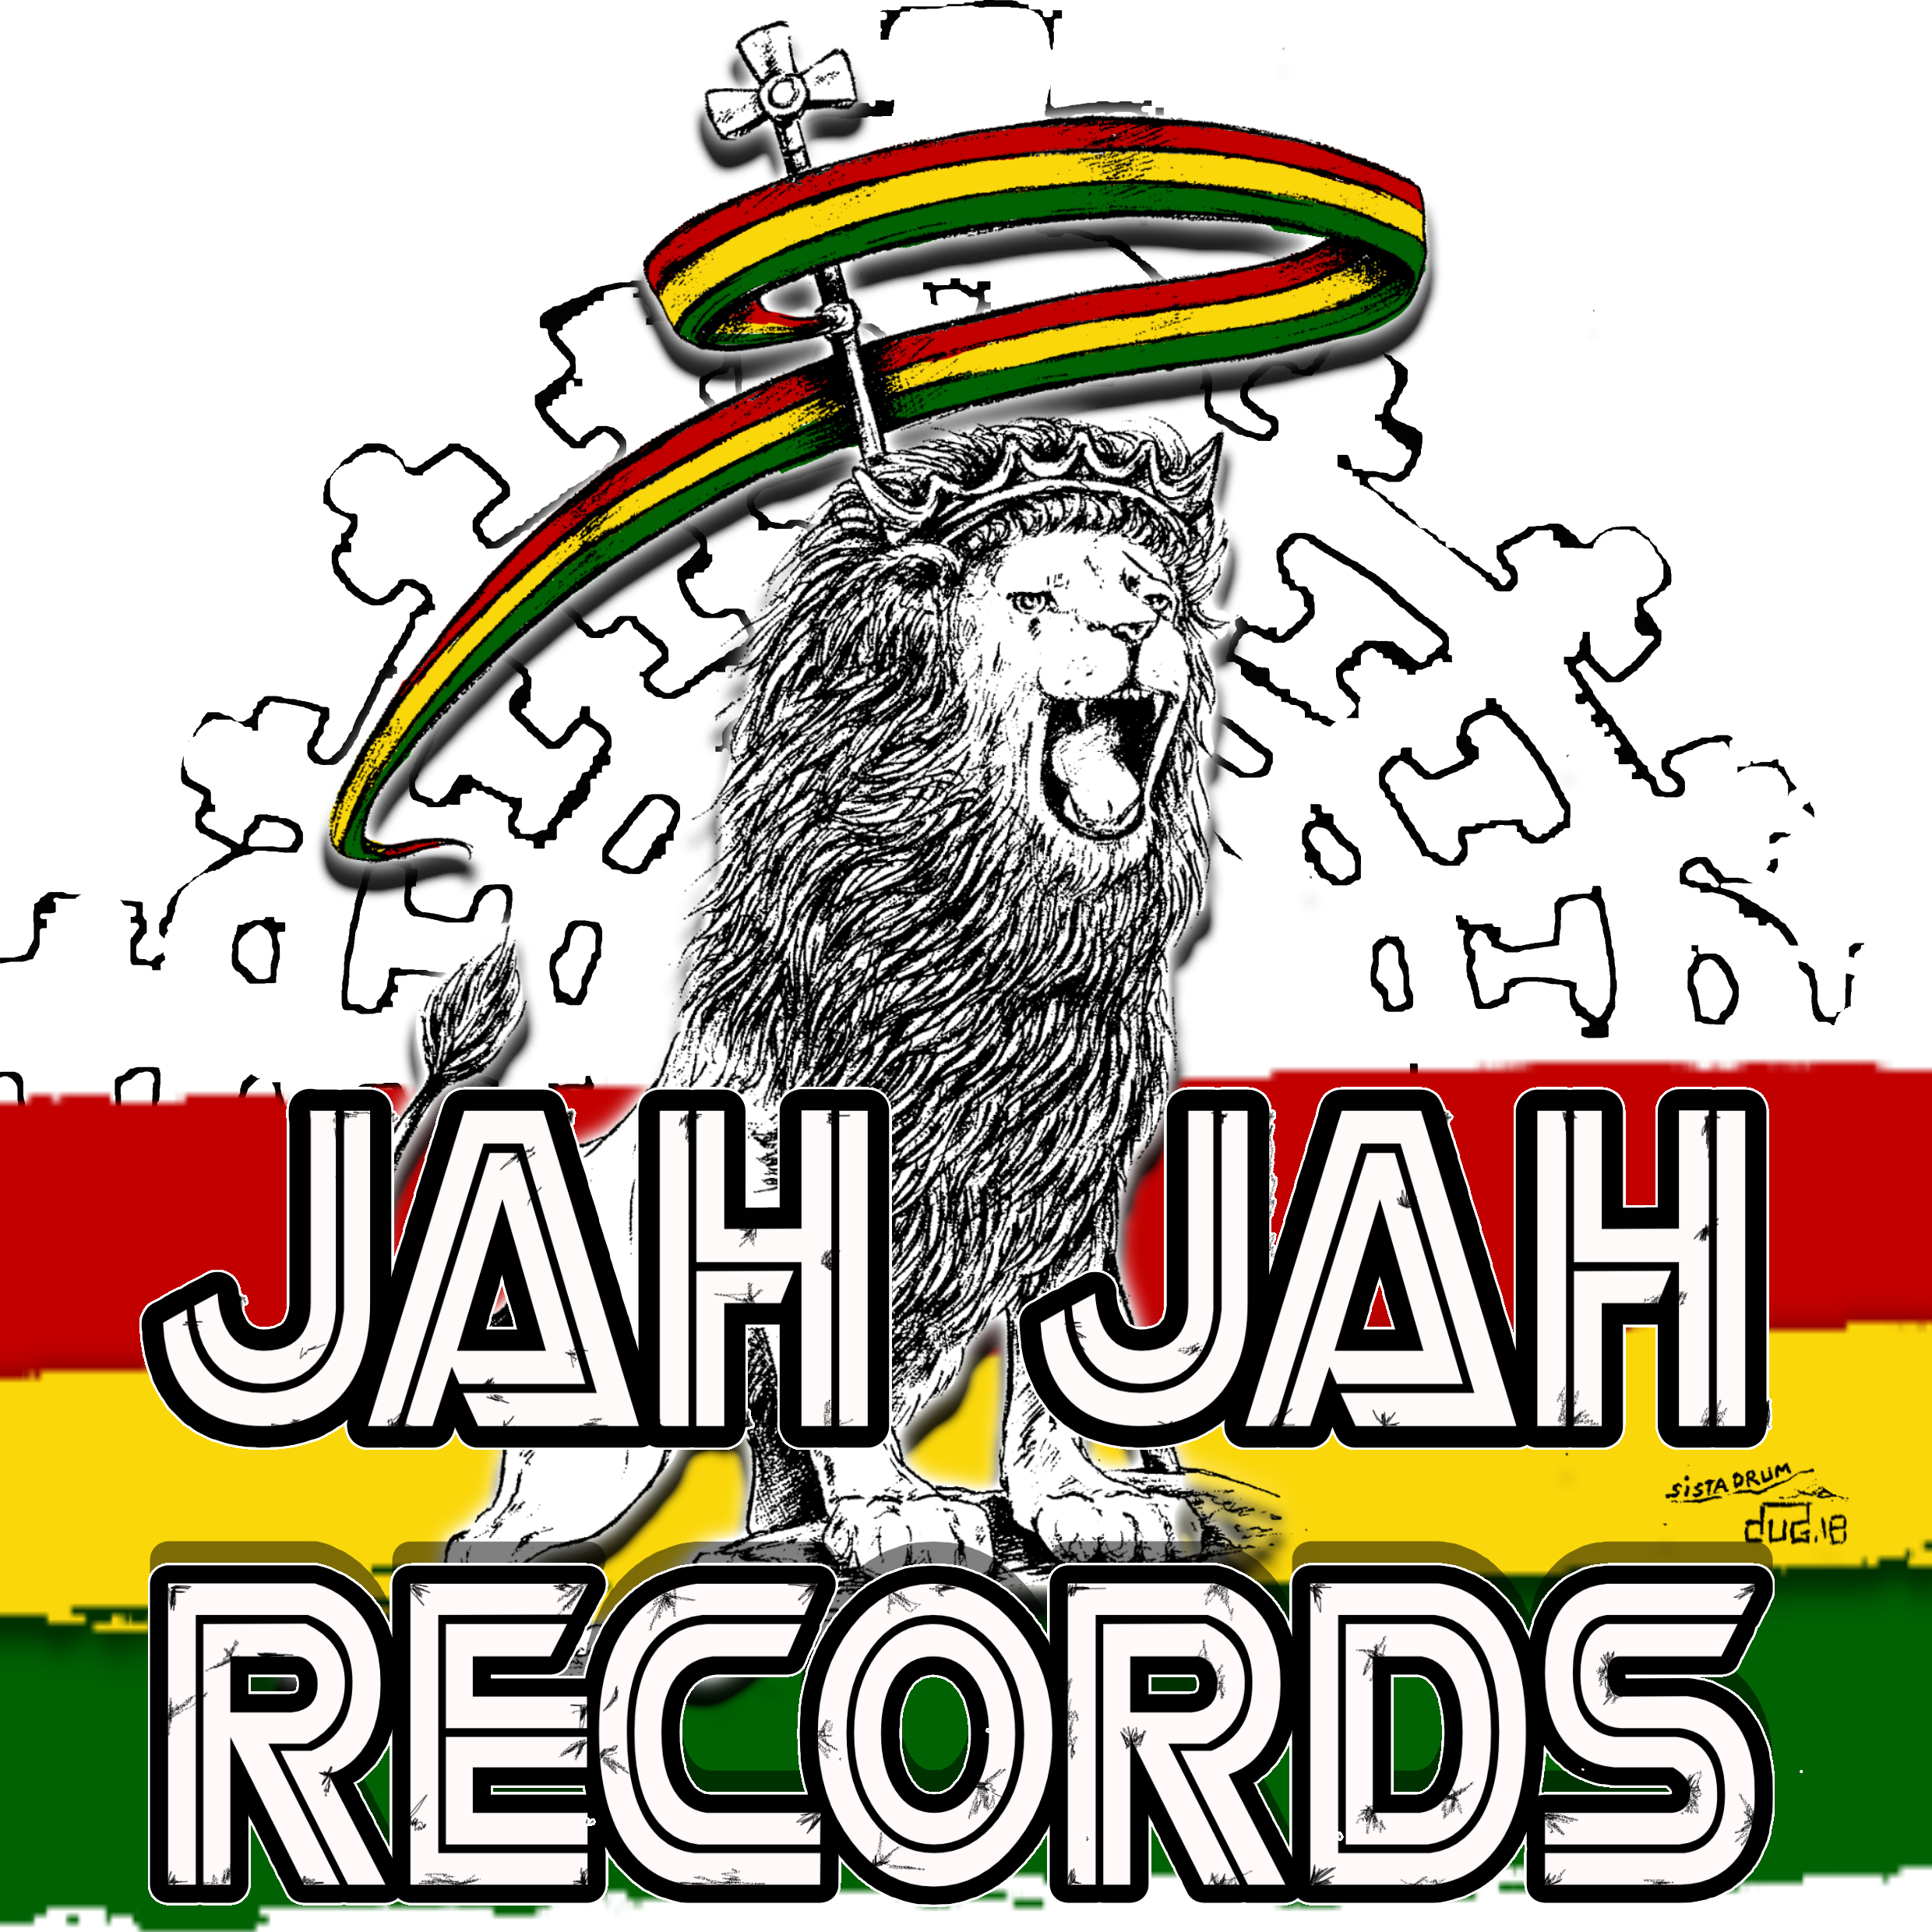 Jah Jah Records